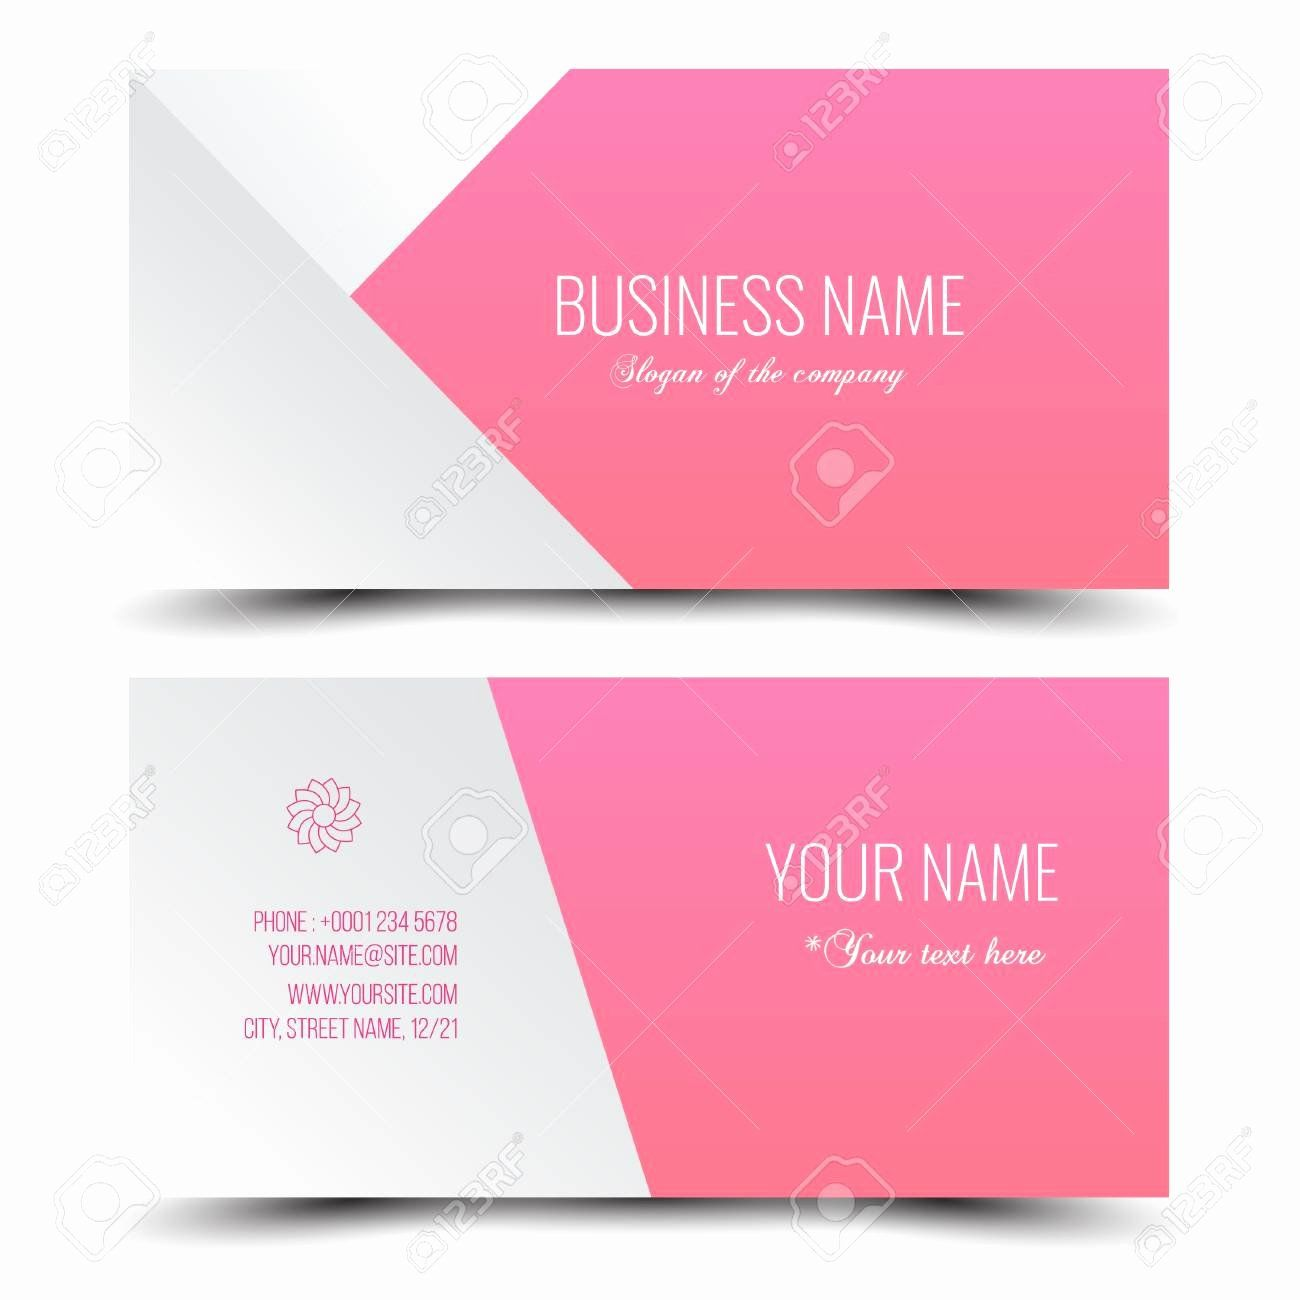 Moo Com Business Card Template Awesome Calling Card Size Template Calling Card Design Free Business Card Templates Business Card Template